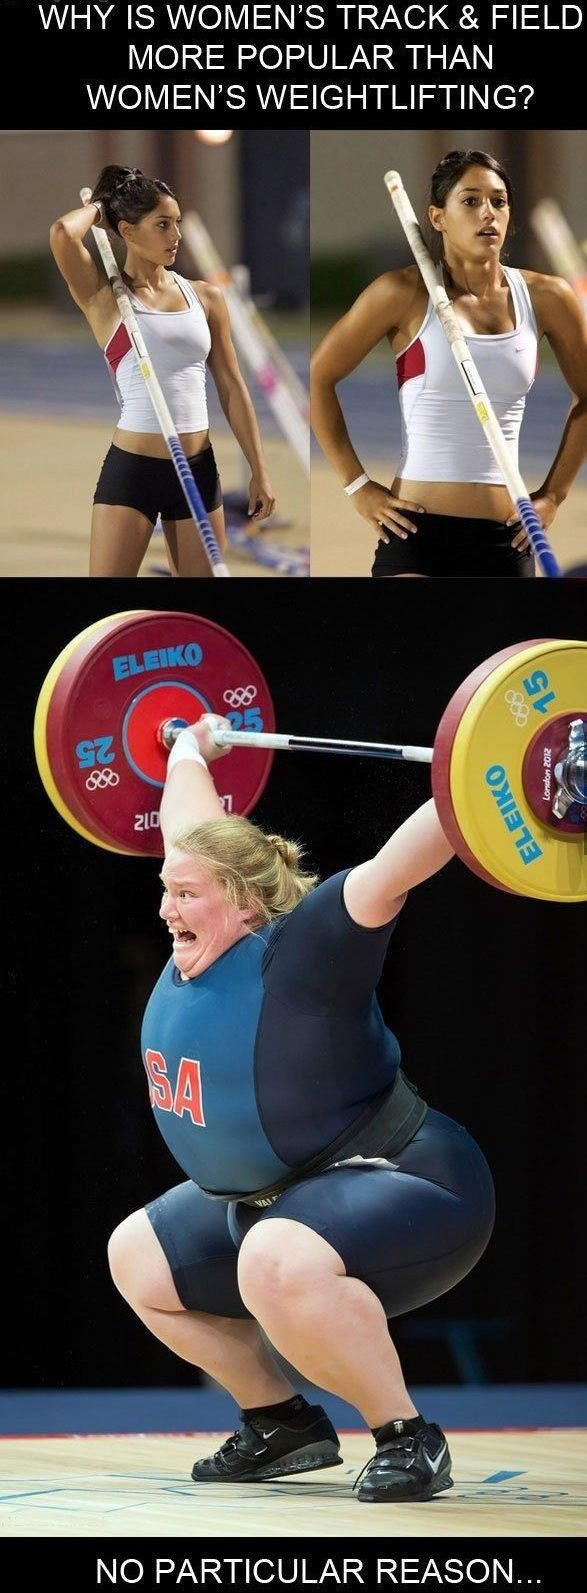 WHY WOMEN'S TRACK & FIELD MORE POPULAR THAN WOMEN'S WEIGHTLIFTING ?